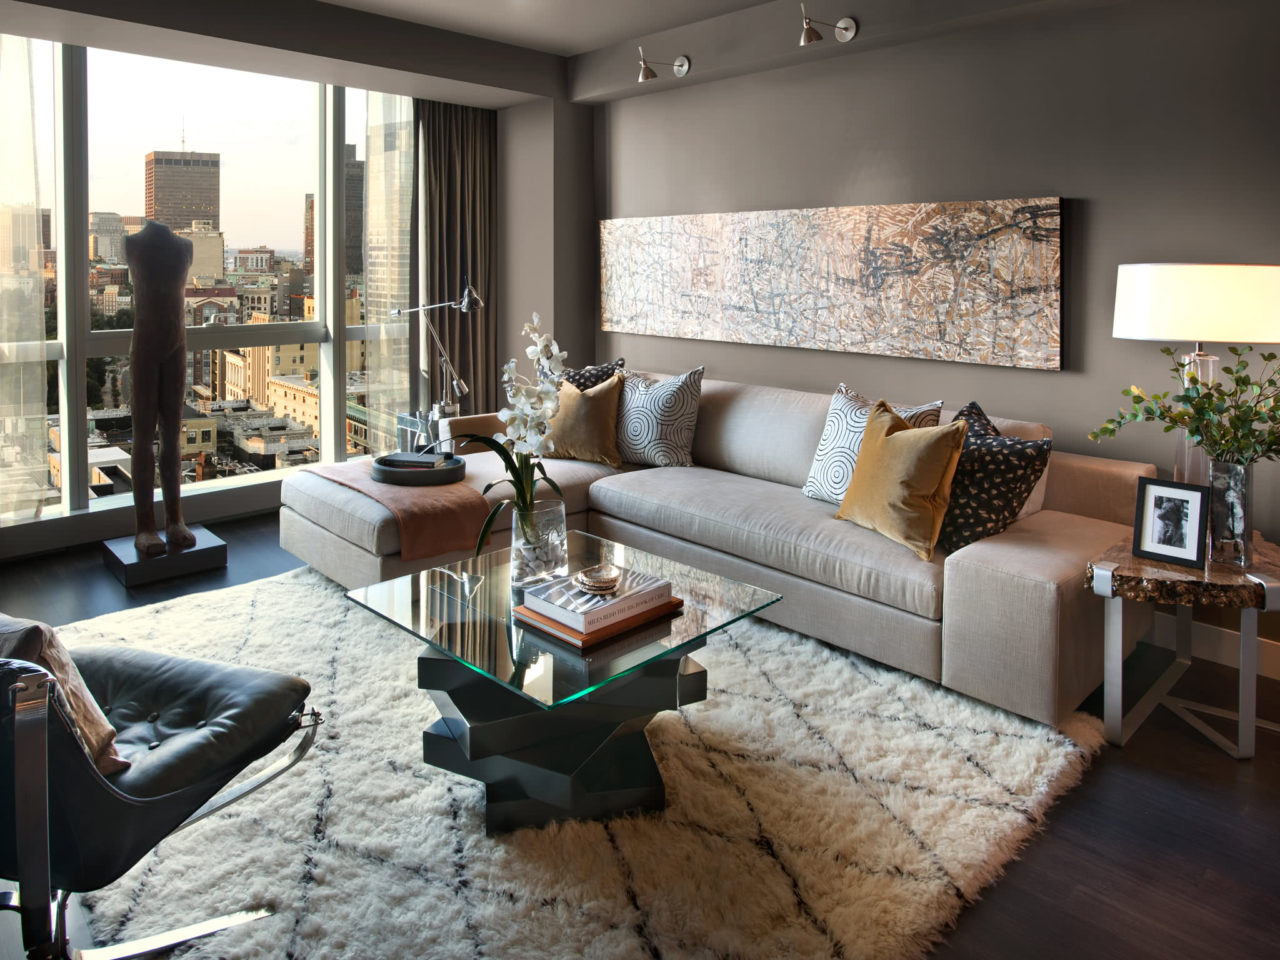 Living room of the HGTV Urban Oasis 2013 located in Boston, MA.